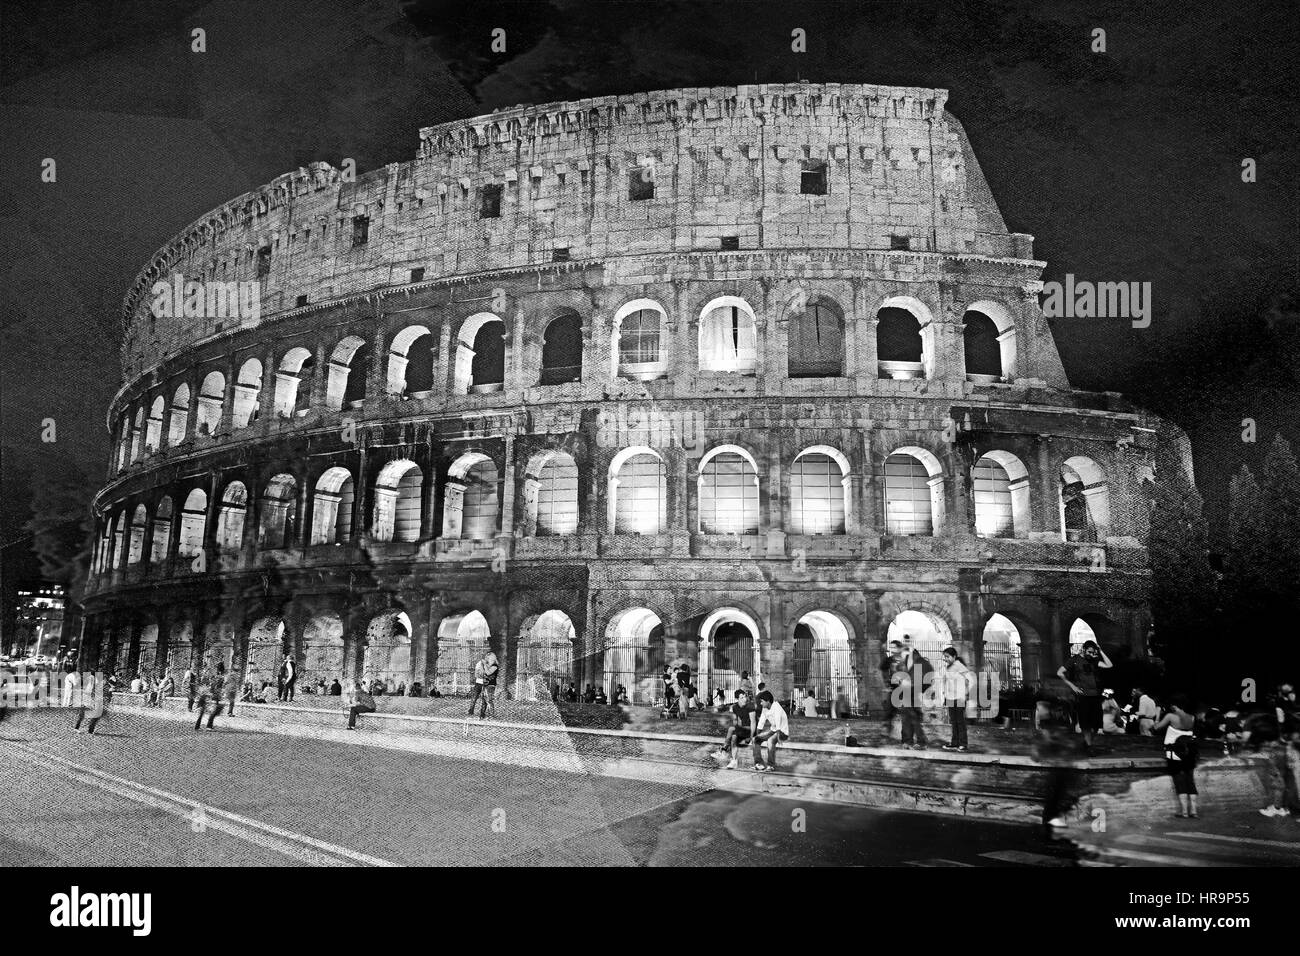 Textured image of the colosseum in Rome - Stock Image